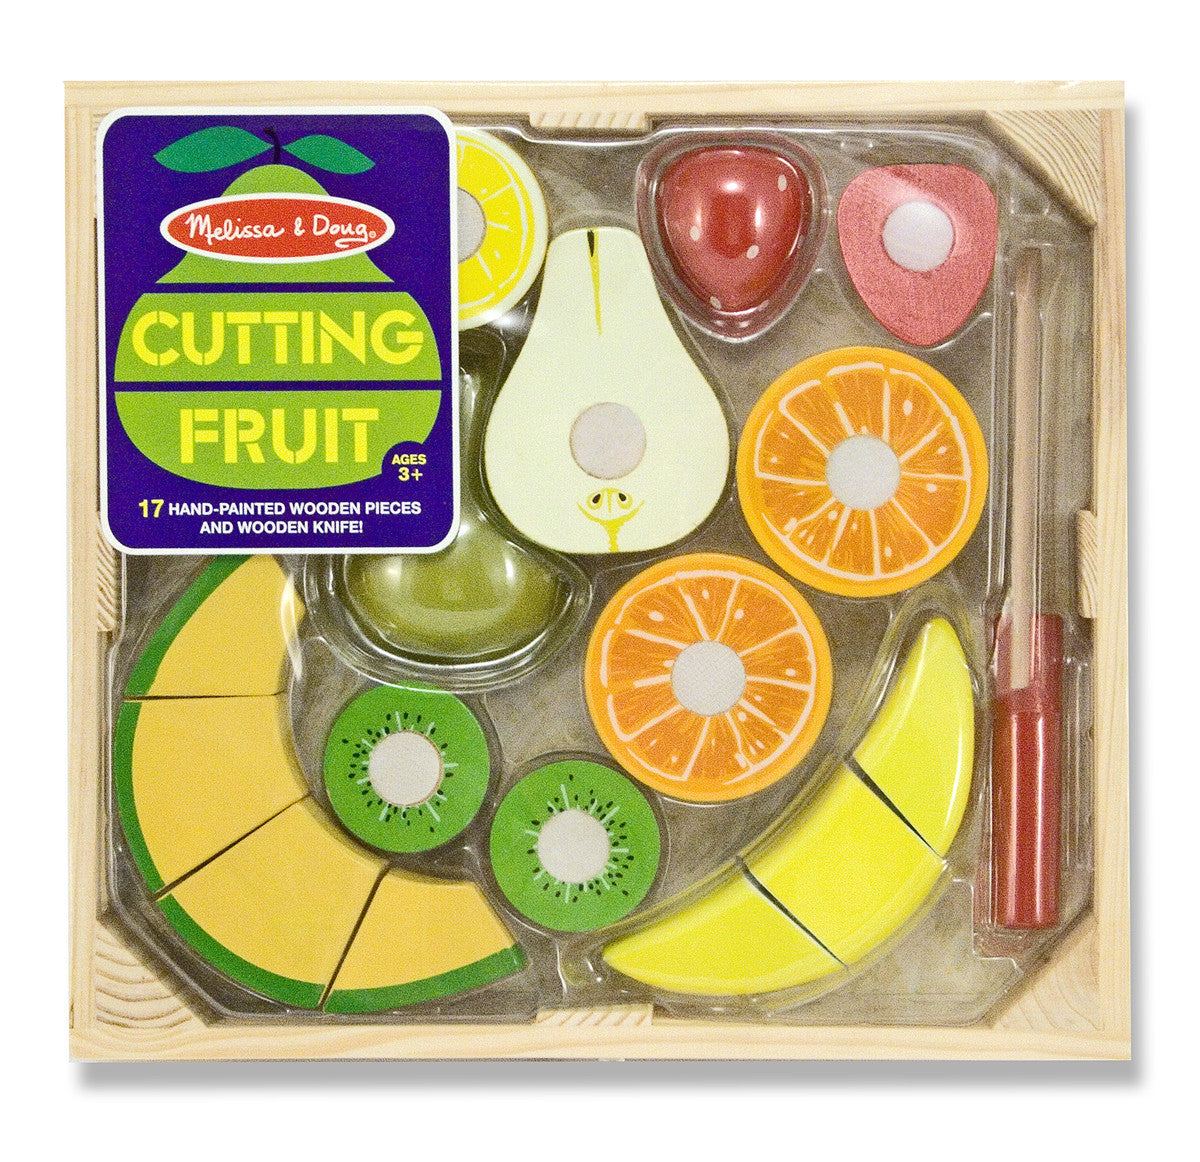 Melissa & Doug Cutting Fruit 4021